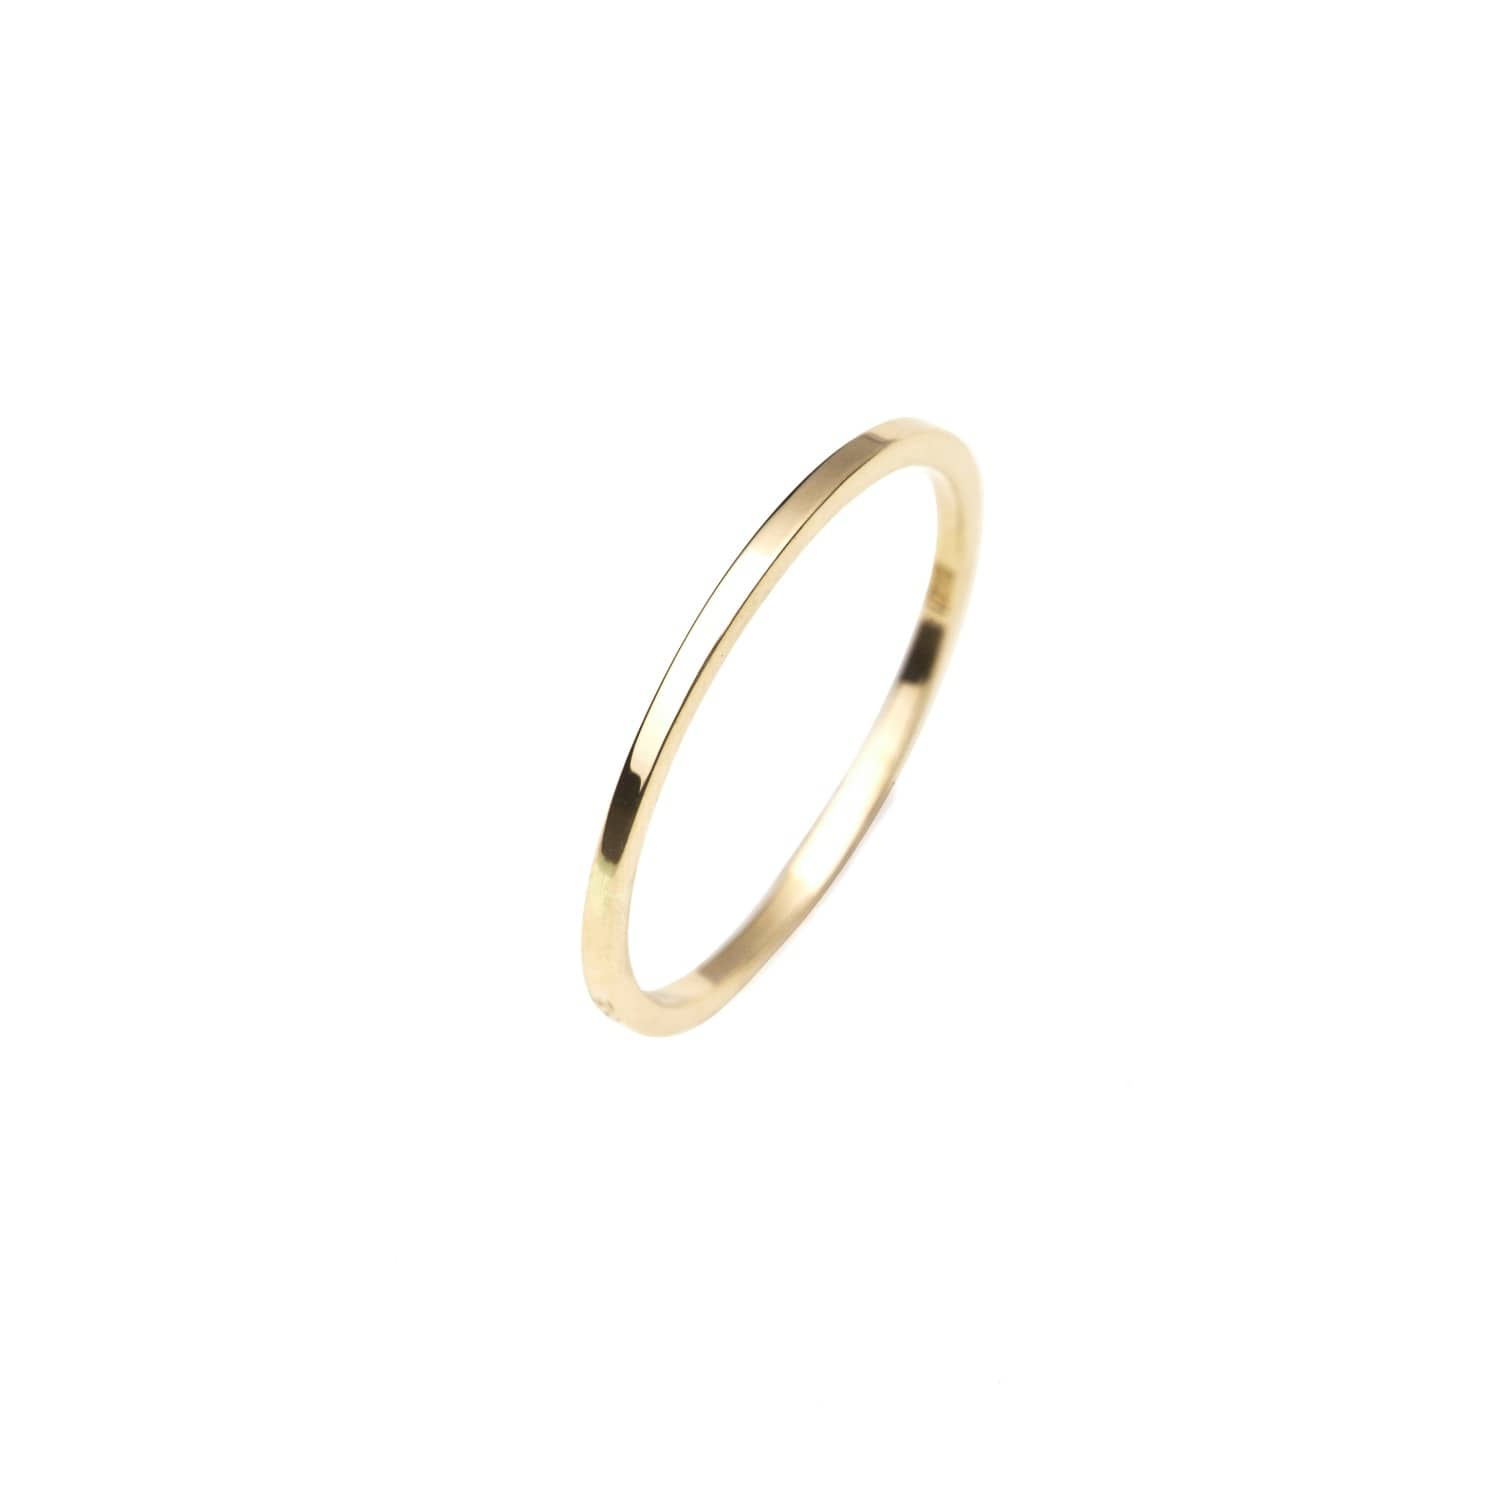 p gold stacking bandtiny finger ringstackingthin fullxfull pipe il ringstop rings thin midi goldsimple geometric skinny in ring ringpromis ringskinny